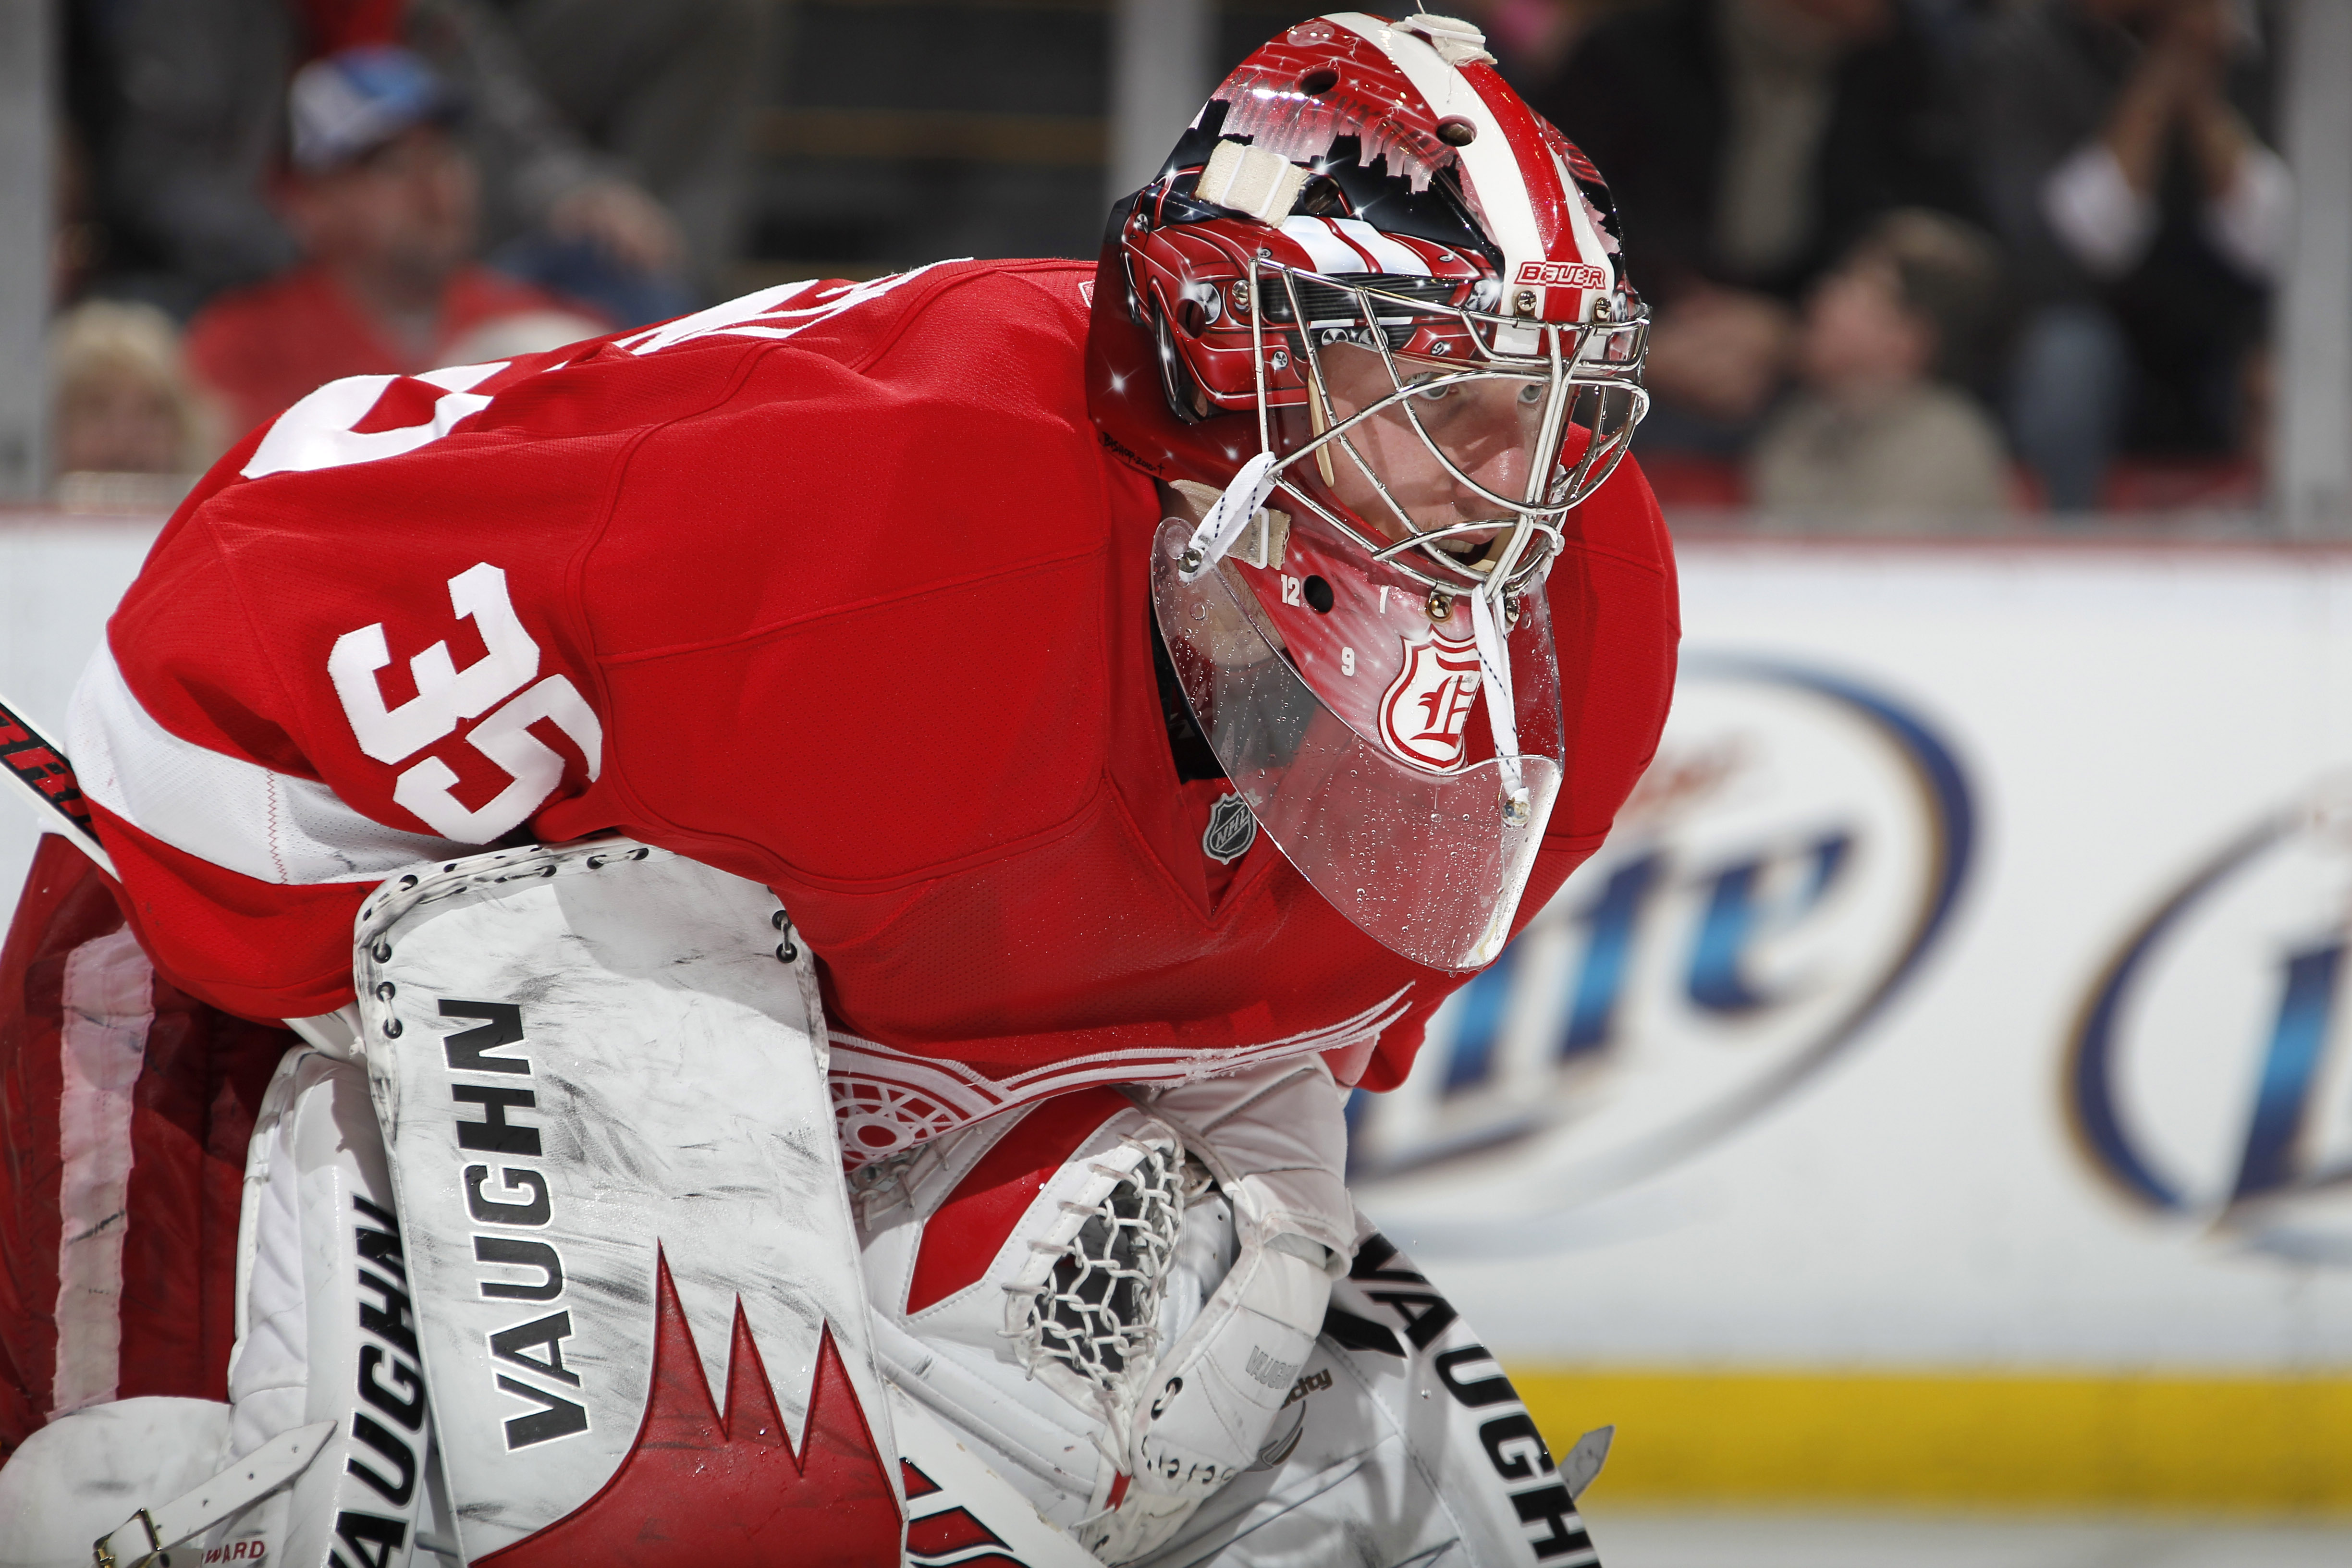 DETROIT, MI - FEBRUARY 13:  Jimmy Howard #35 of the Detroit Red Wings watches the puck while playing against the Boston Bruins on February 13, 2011 in Detroit, Michigan.  (Photo by Gregory Shamus/Getty Images)